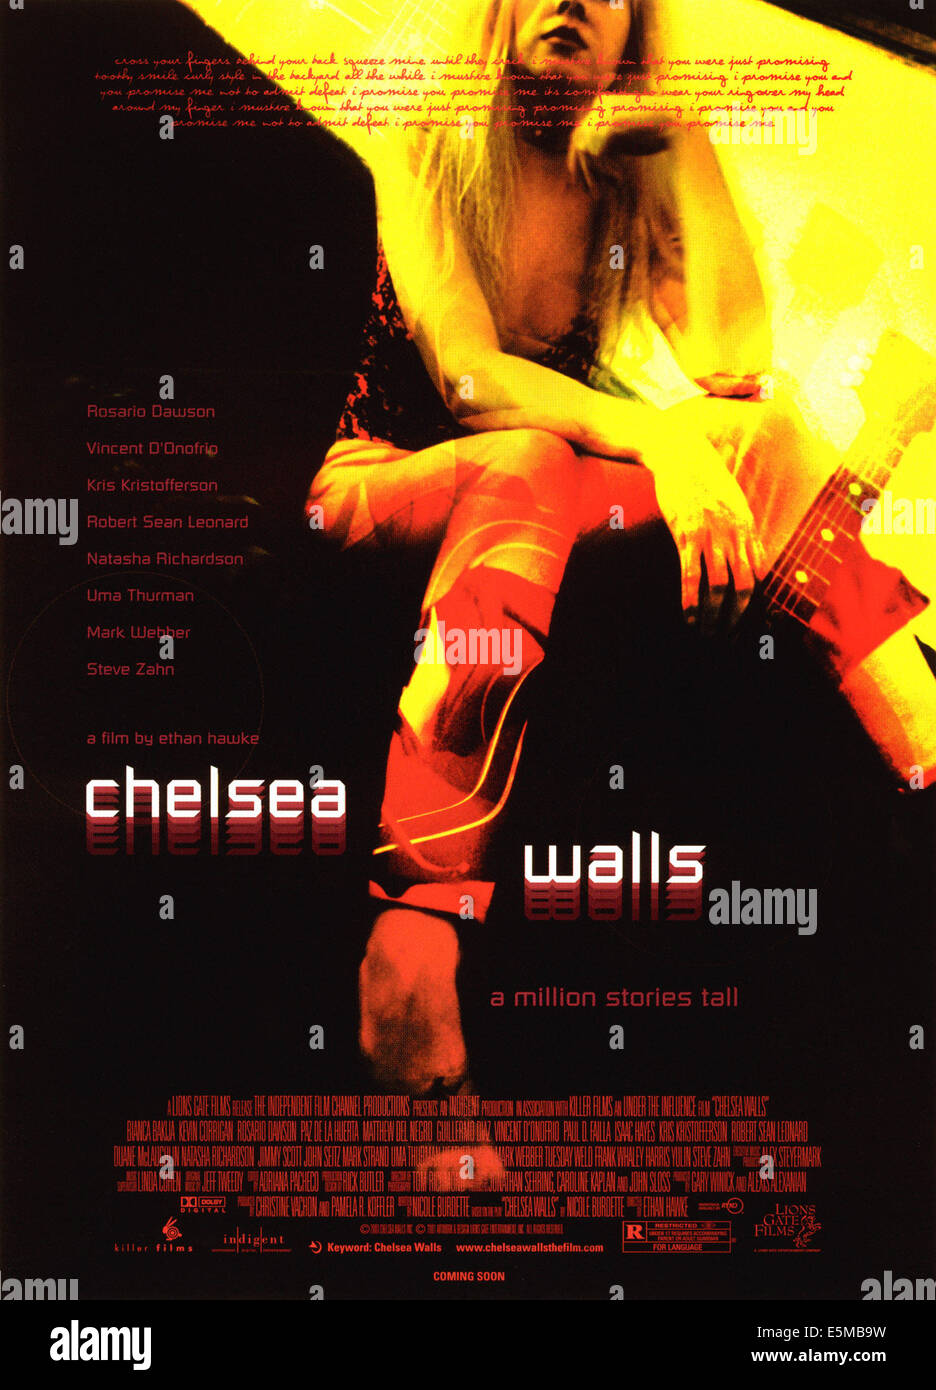 CHELSEA WALLS, poster art, 2001. (c) Lions Gate Films/ Courtesy: Everett Collection. - Stock Image